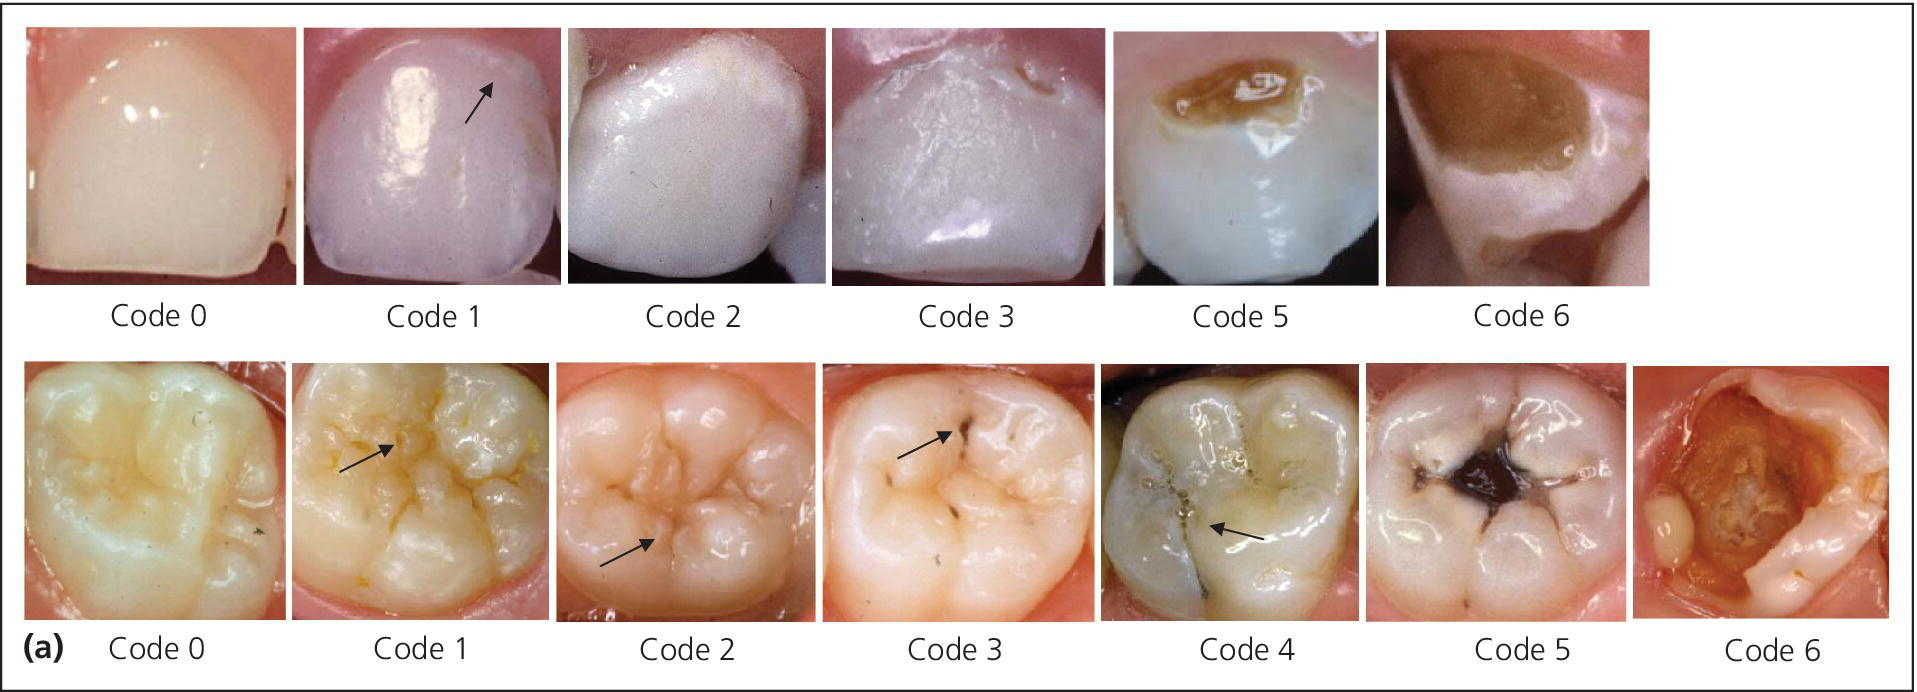 Two sets of photos of the teeth, depicting the ICDAS-based criteria for severity grading of caries on free smooth and occlusal tooth surfaces.